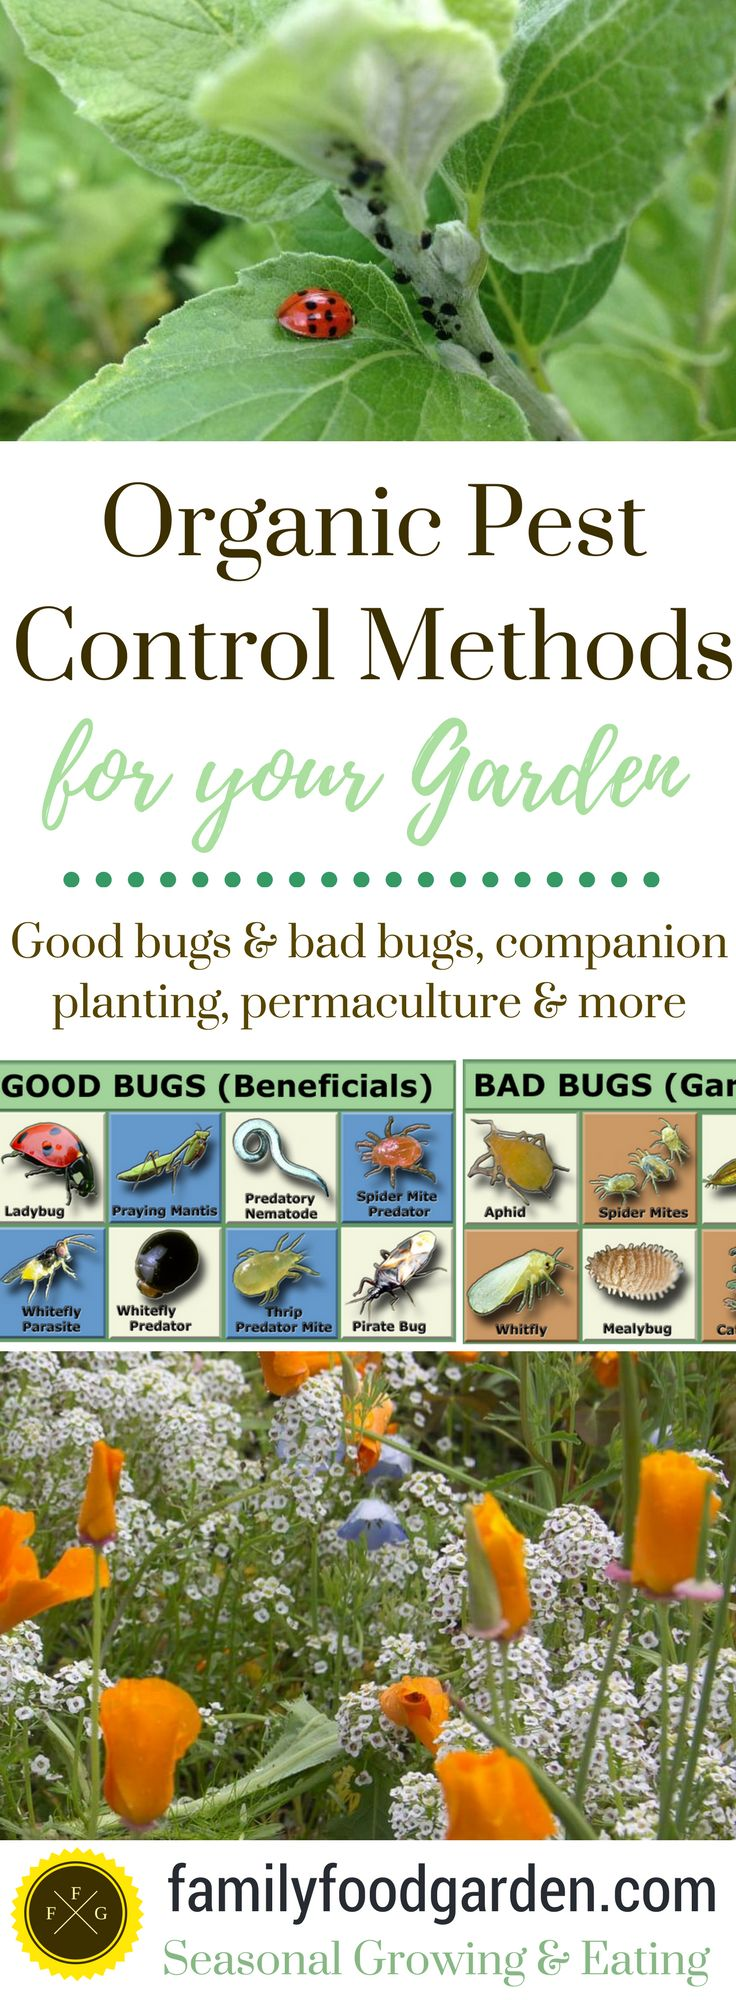 340 Best Garden And Flowers Images On Pinterest Gardening Herb Gardening And Herb Garden